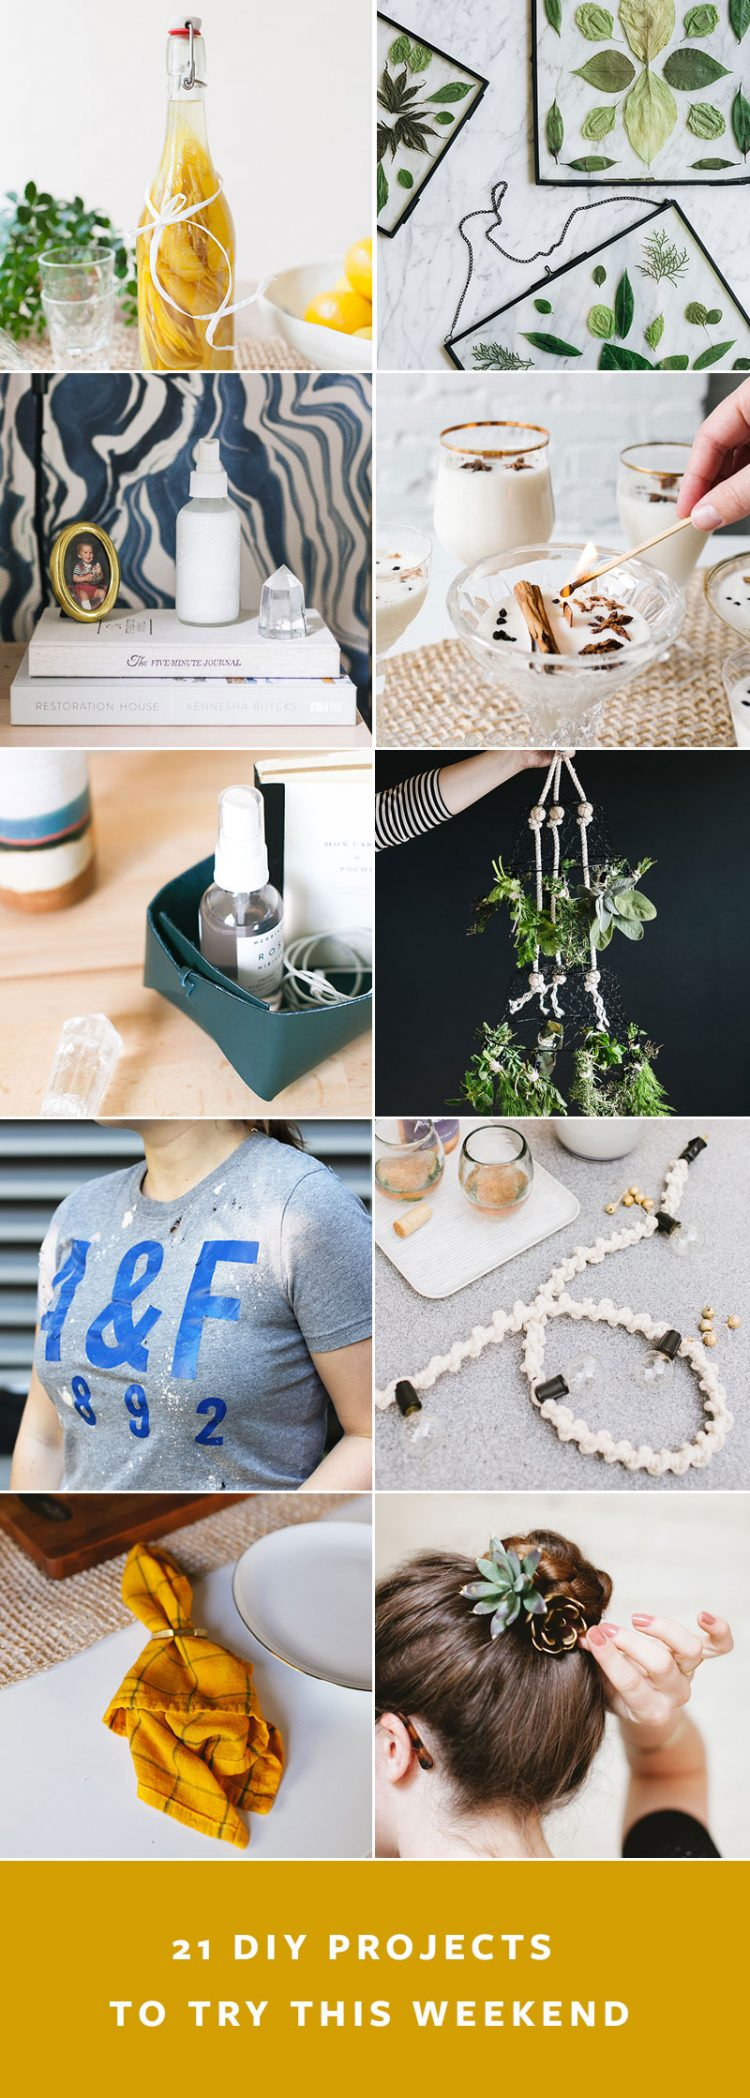 Try Any of These 21 DIY Projects to Lift Your Mood & Distract You! kid-friendly craft projects, essential oils, how to ice dye, DIY craft projects. #DIY #crafts #tutorials #diyprojects